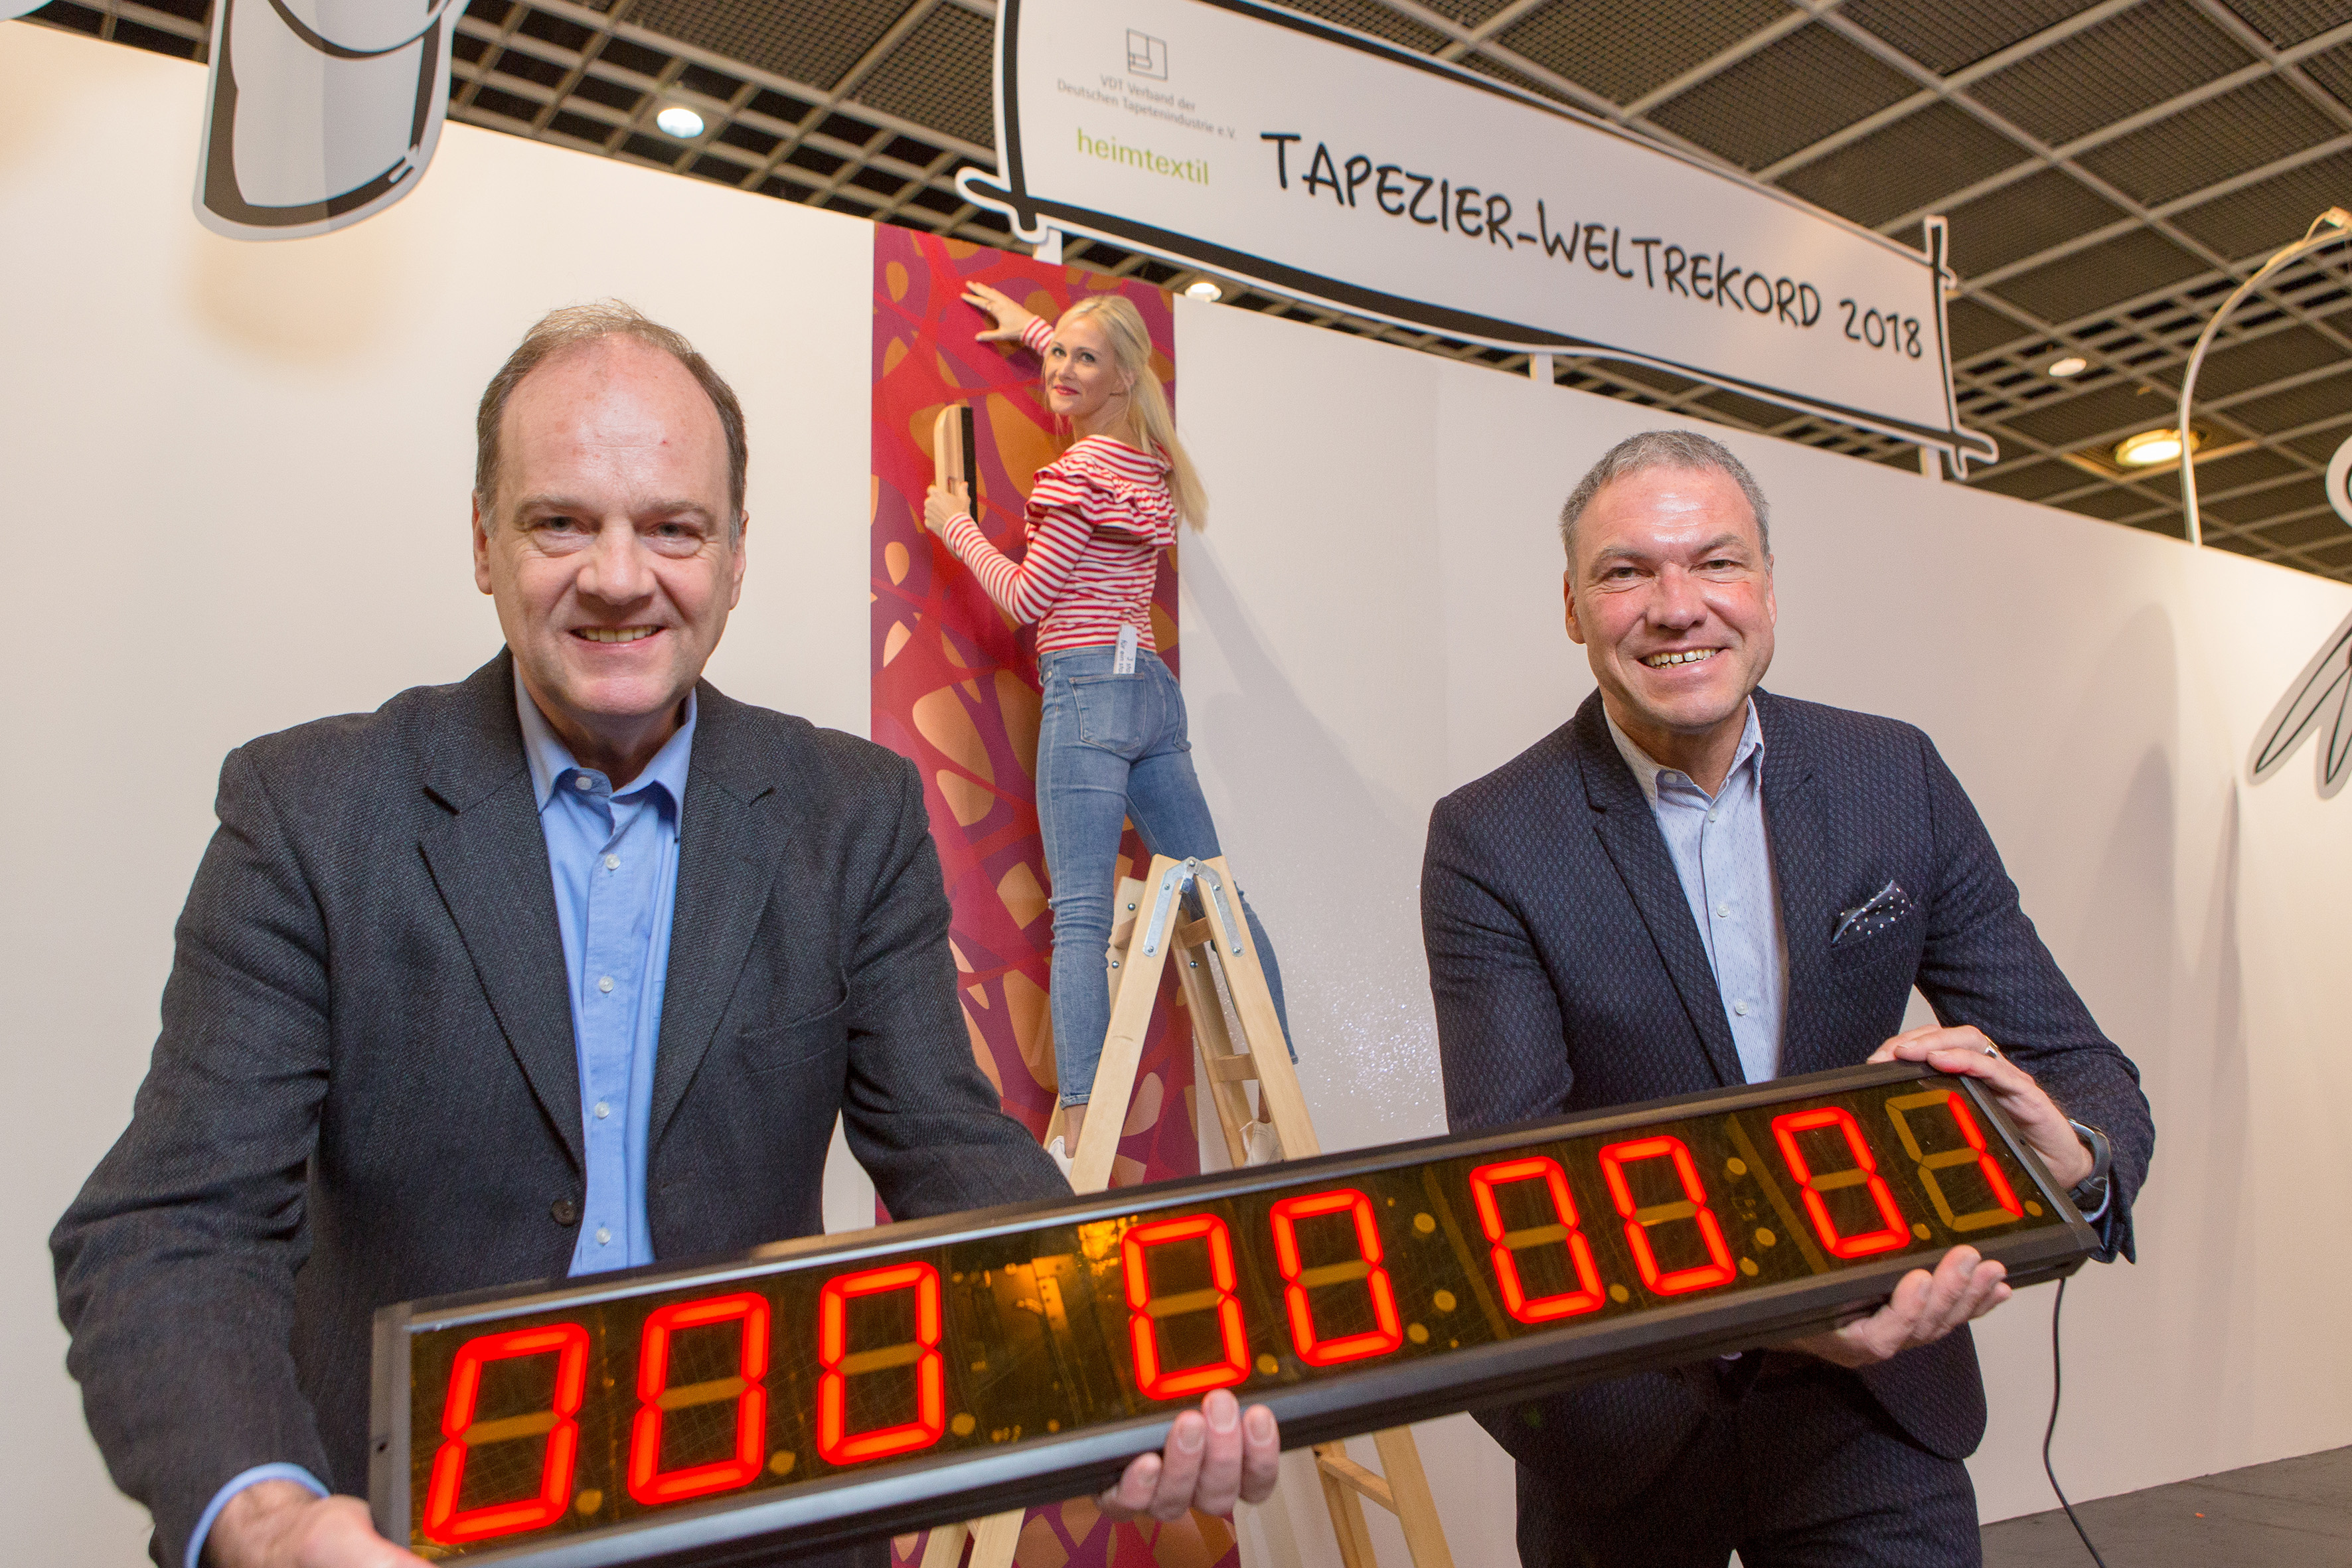 World record in wallpapering